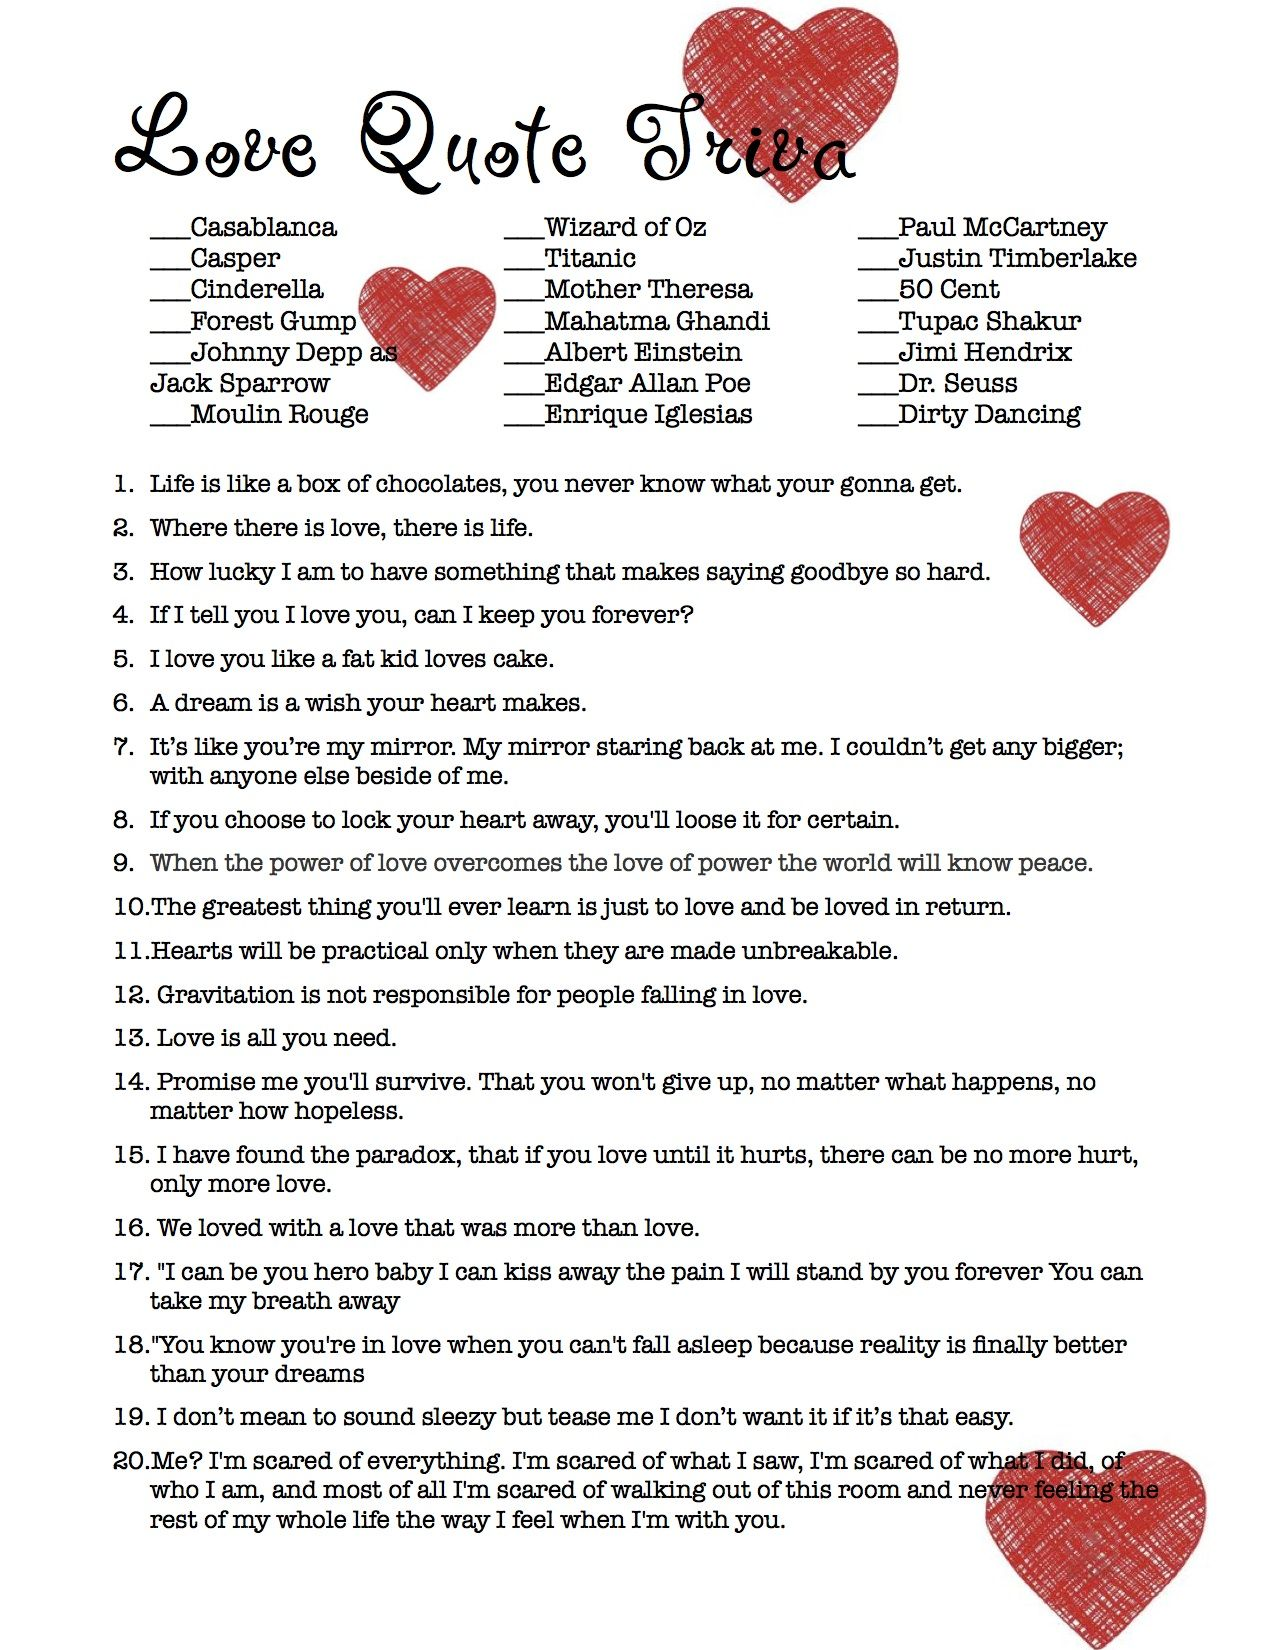 Love Quote Trivia - Bridal Shower Game (Not your typical quotes ...